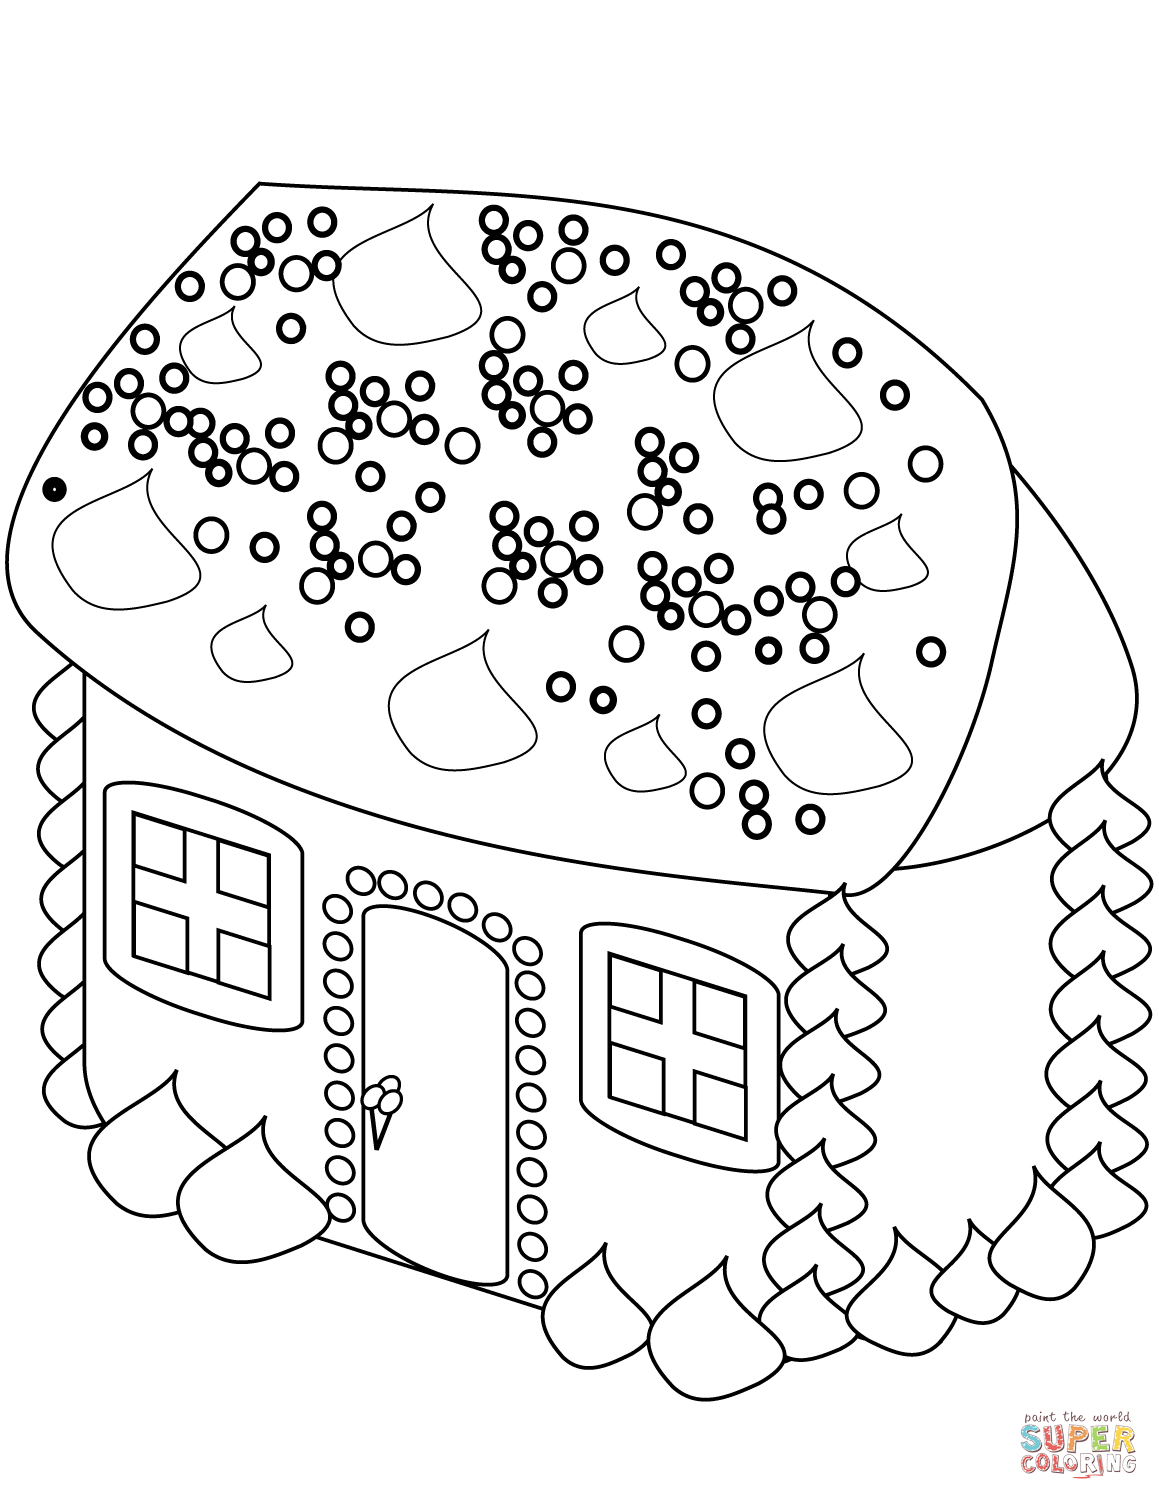 Gingerbread House Coloring Page | Free Printable Coloring Pages - Free Printable Pictures To Color